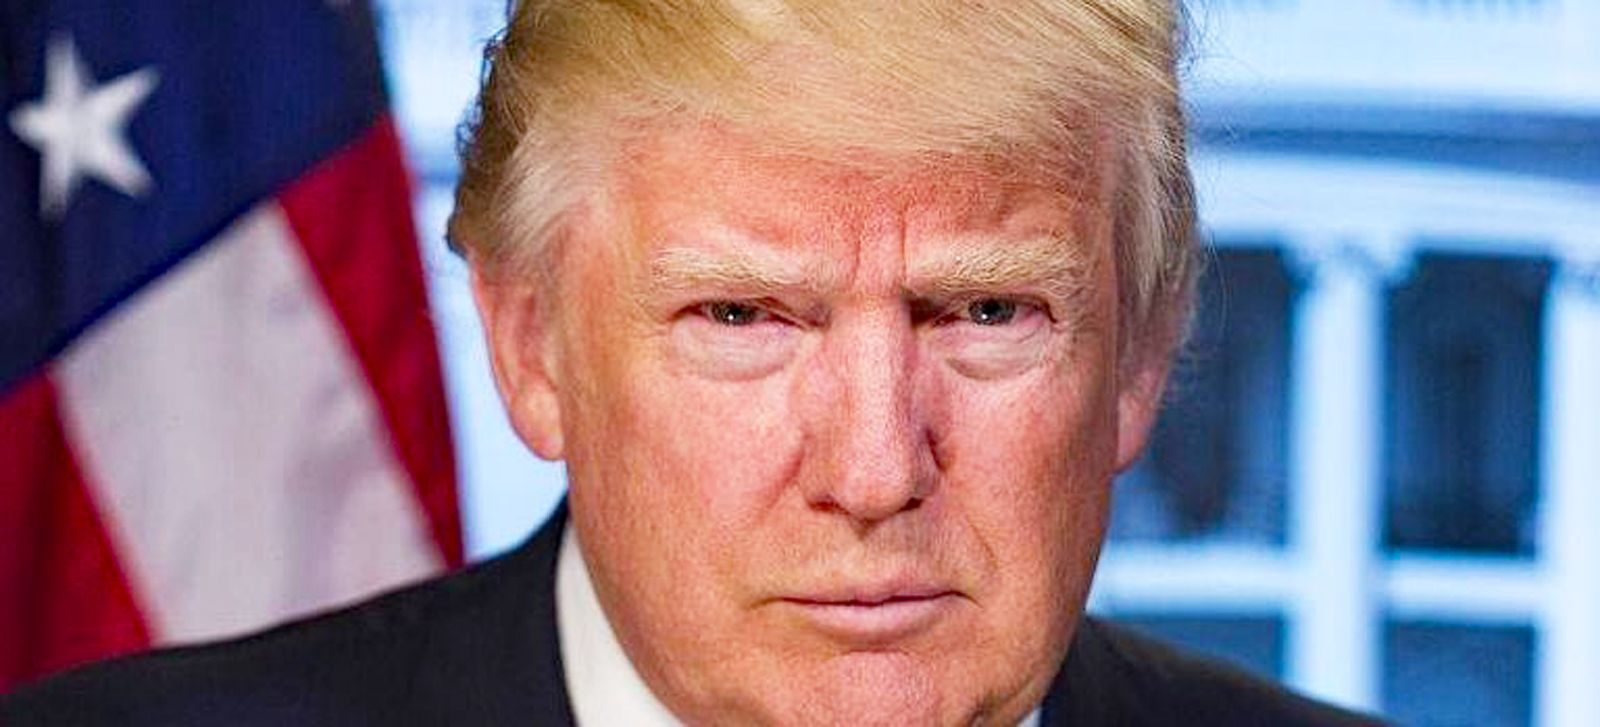 Donald Trump (President of the United States of America). Source of the image his official profile on Facebook.